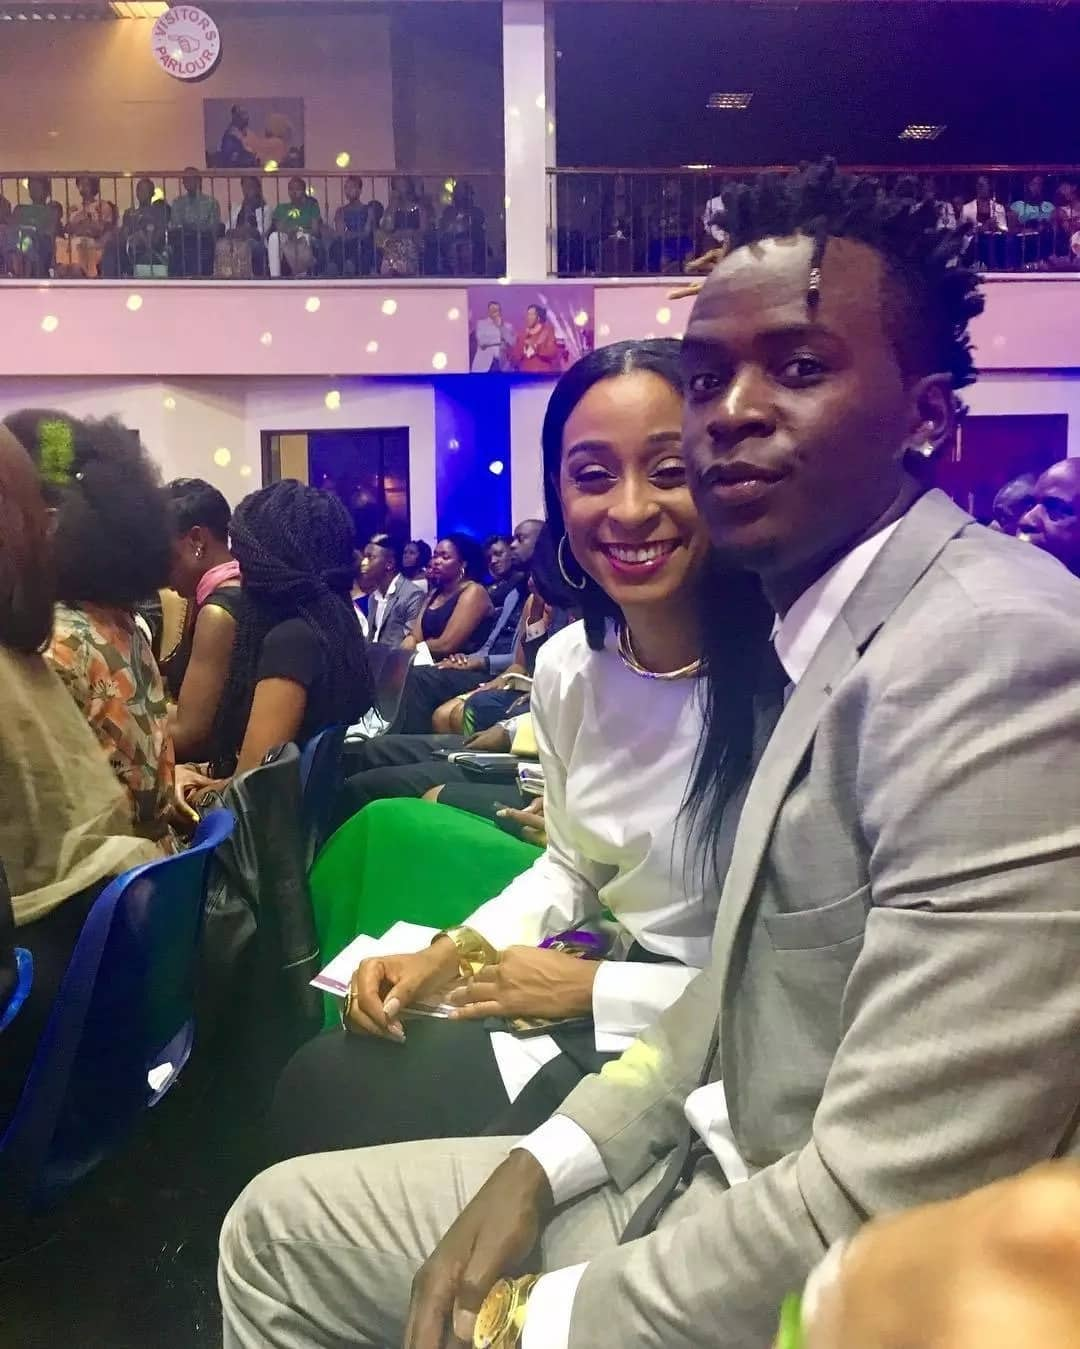 MP's wife blasts Willy Paul